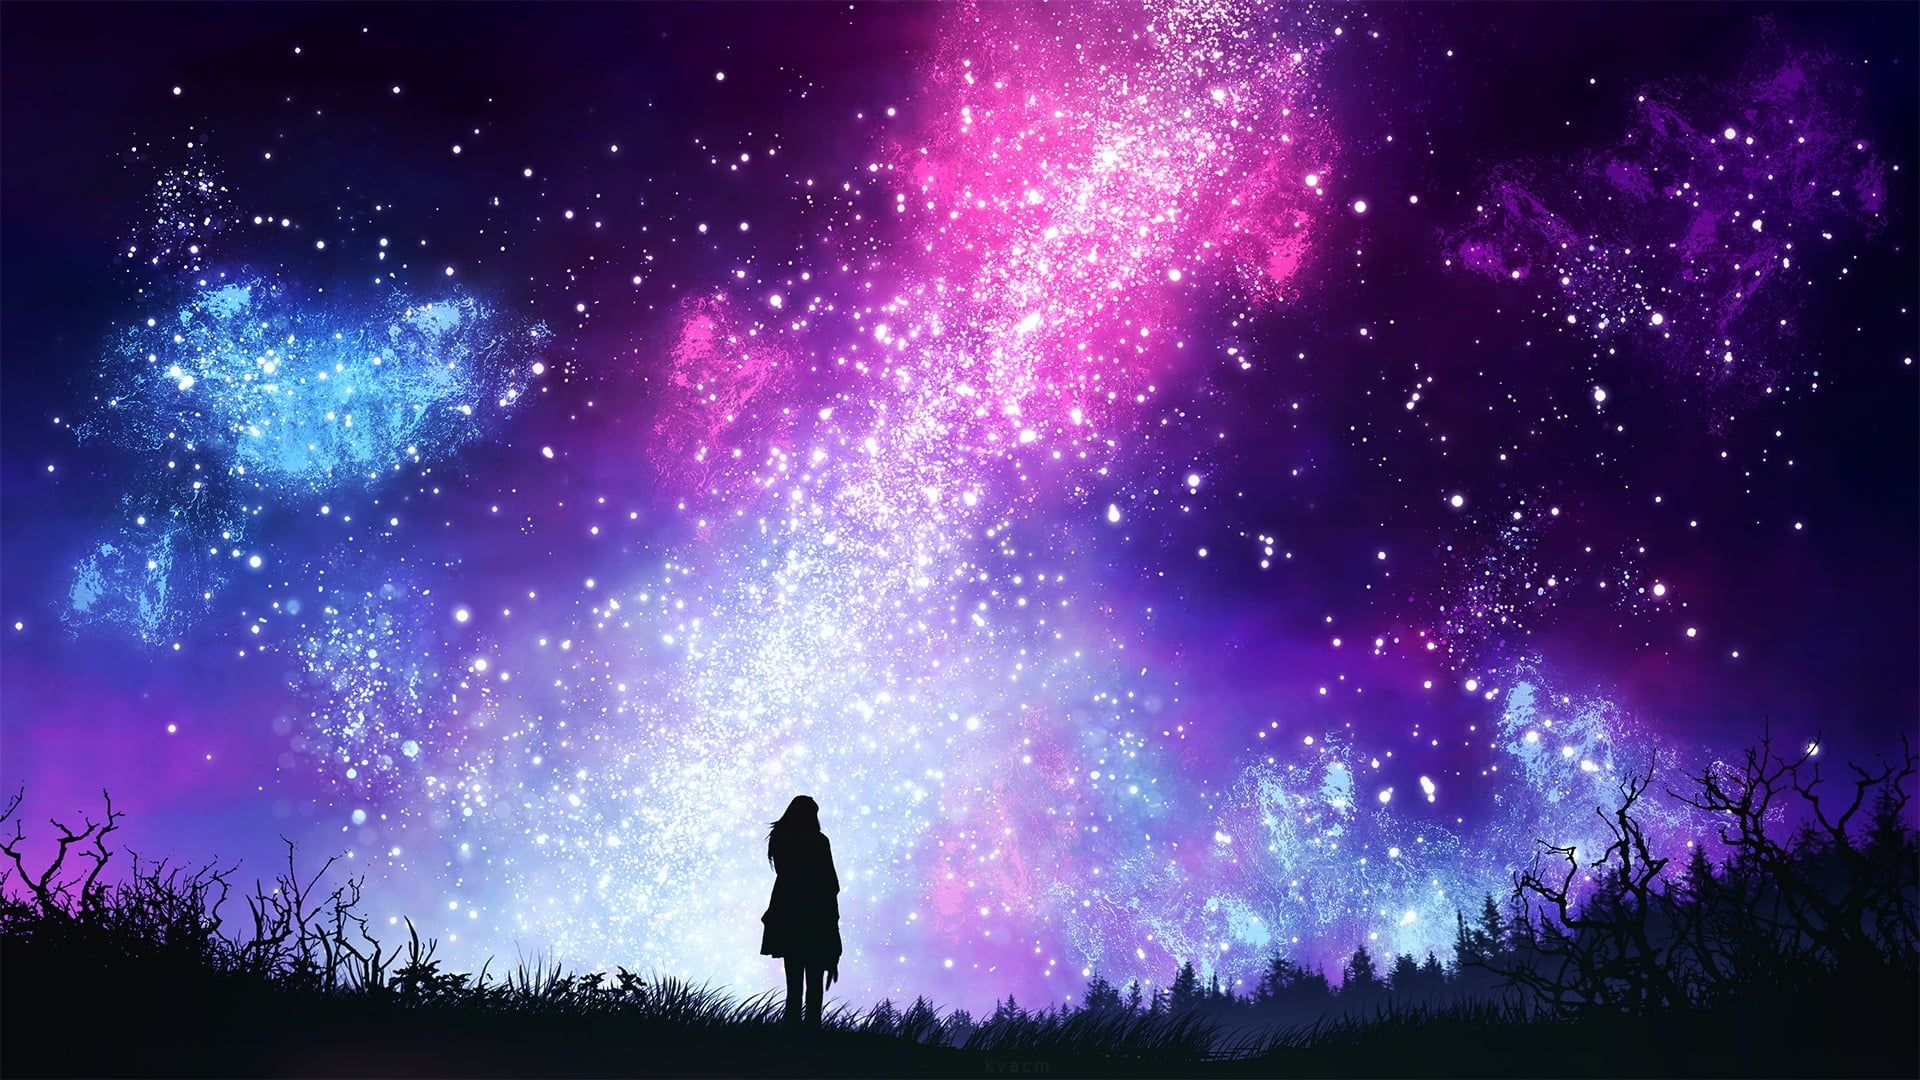 Pink Purple And Blue Galaxy Stars The Sky Girl Space Night By Kvacm 1080p Wallpaper Hdwallpaper Des Night Sky Wallpaper Galaxy Painting Silhouette Art